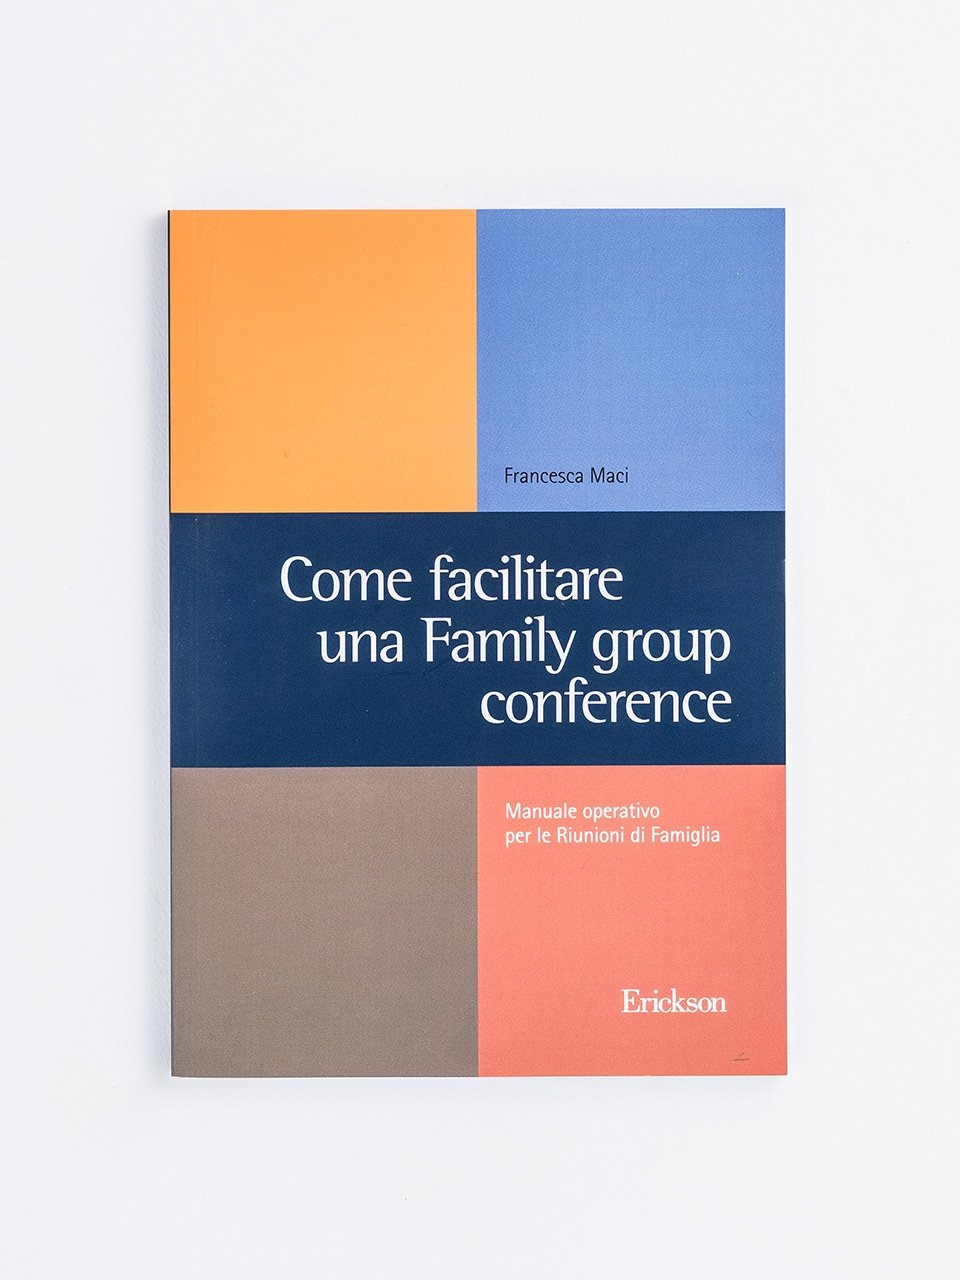 Come facilitare una Family group conference - La valigetta del Narratore - Giochi - Erickson